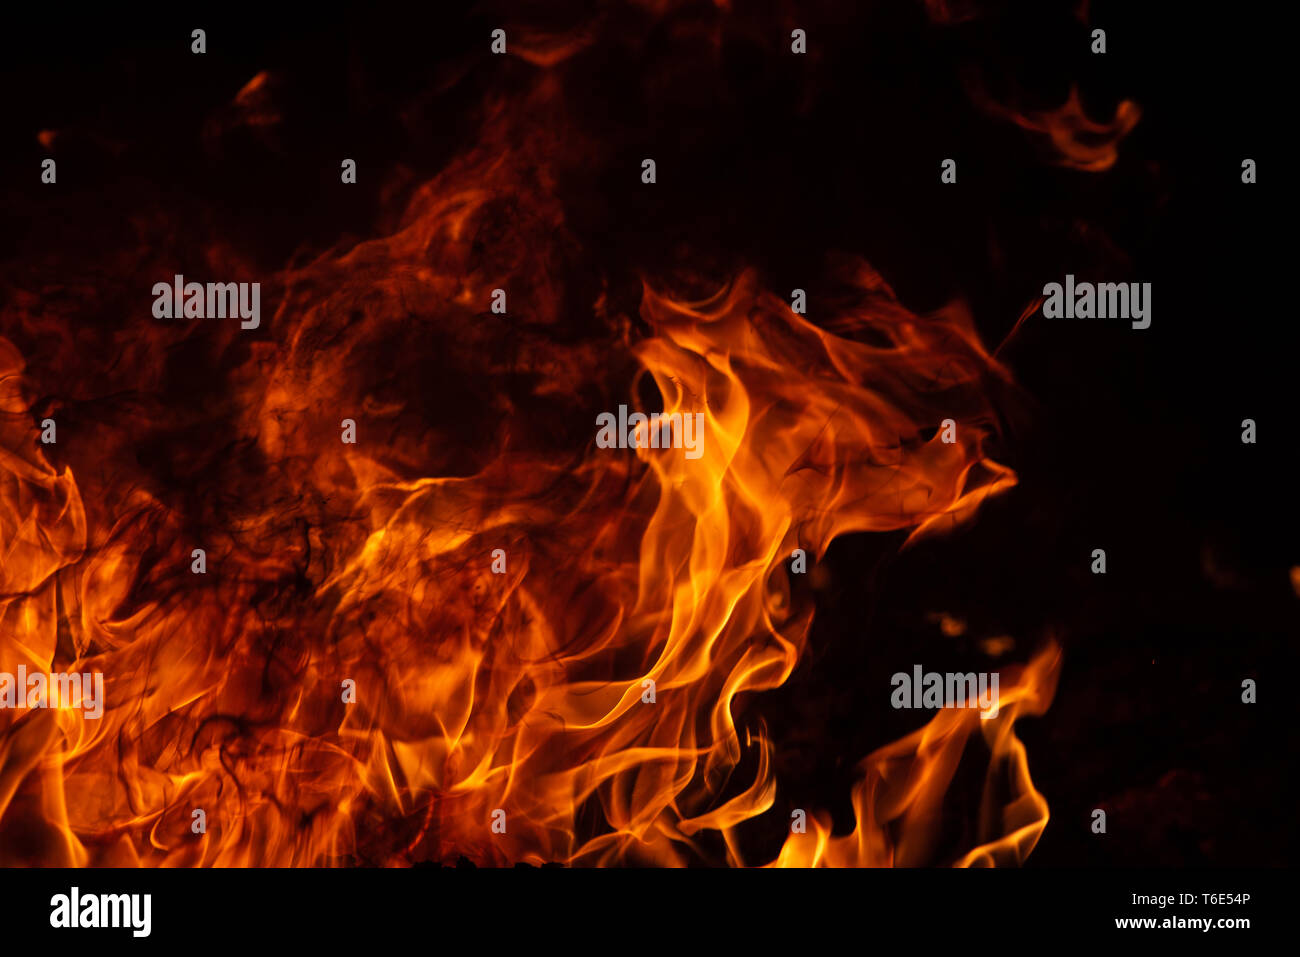 On fire. Themes of fire, disaster and extreme events. Background with copy space for text. - Stock Image